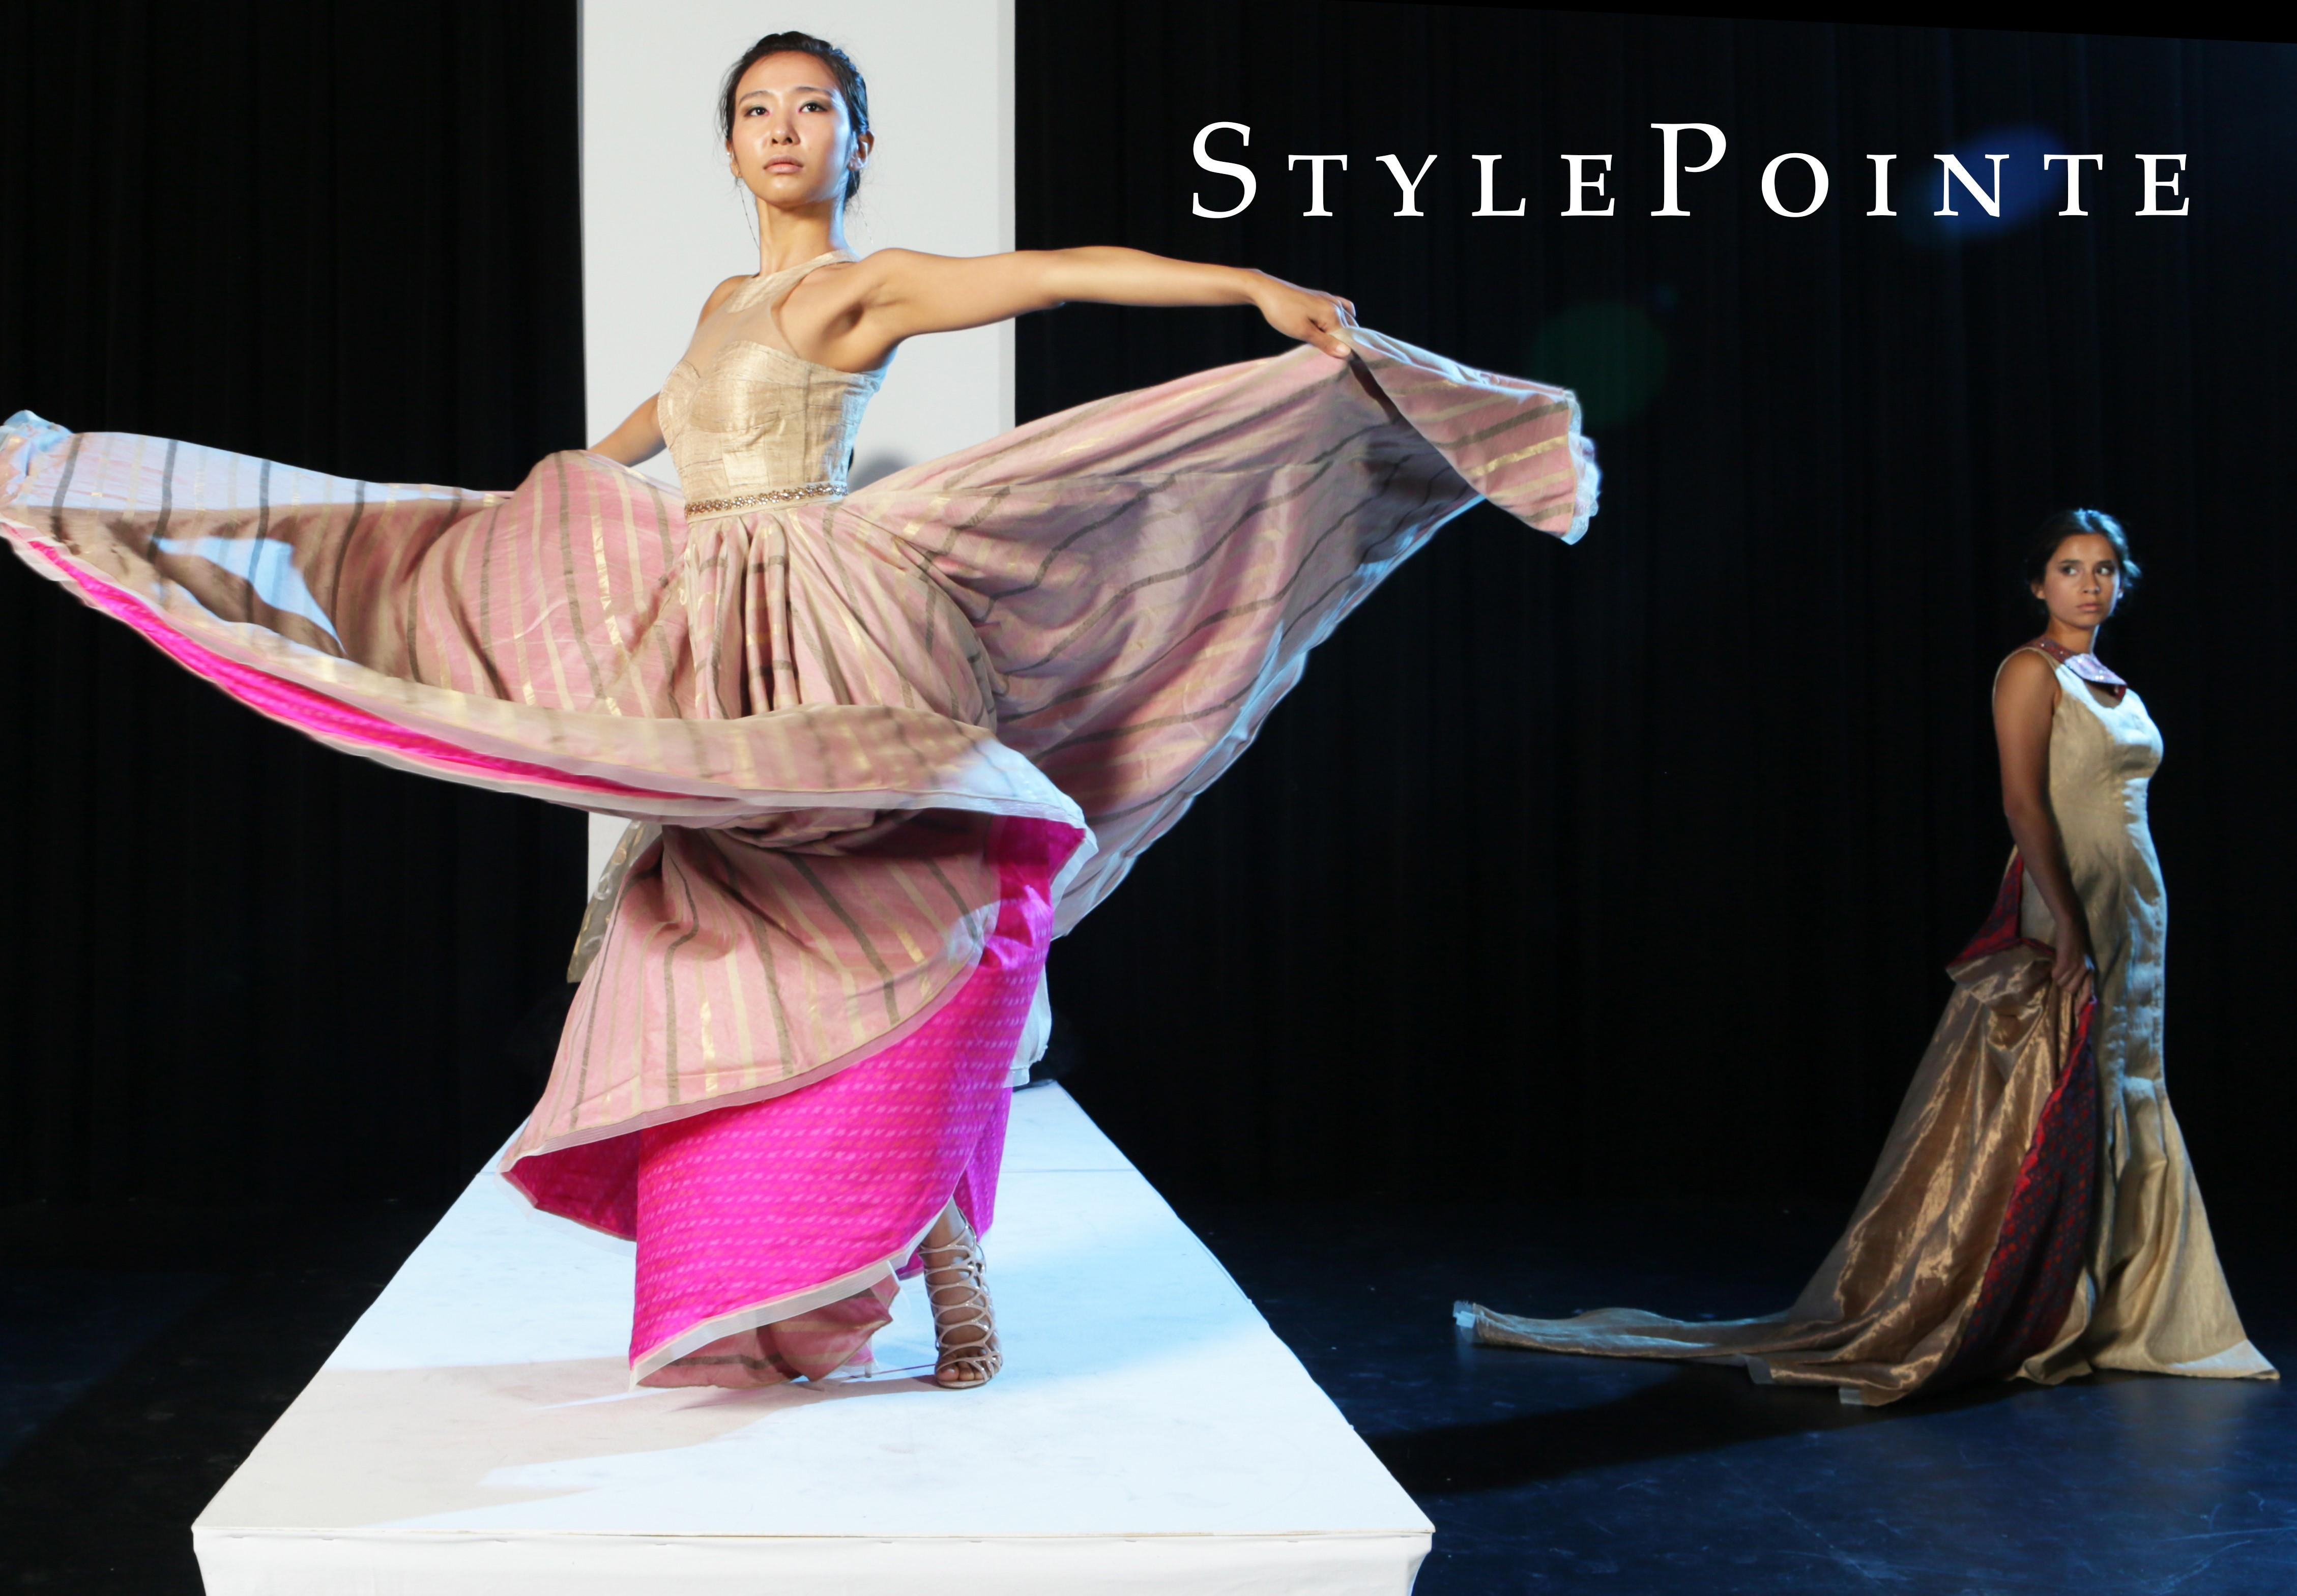 StylePointe 2017 Fashion Show during NYFW - Thursday, September 14th